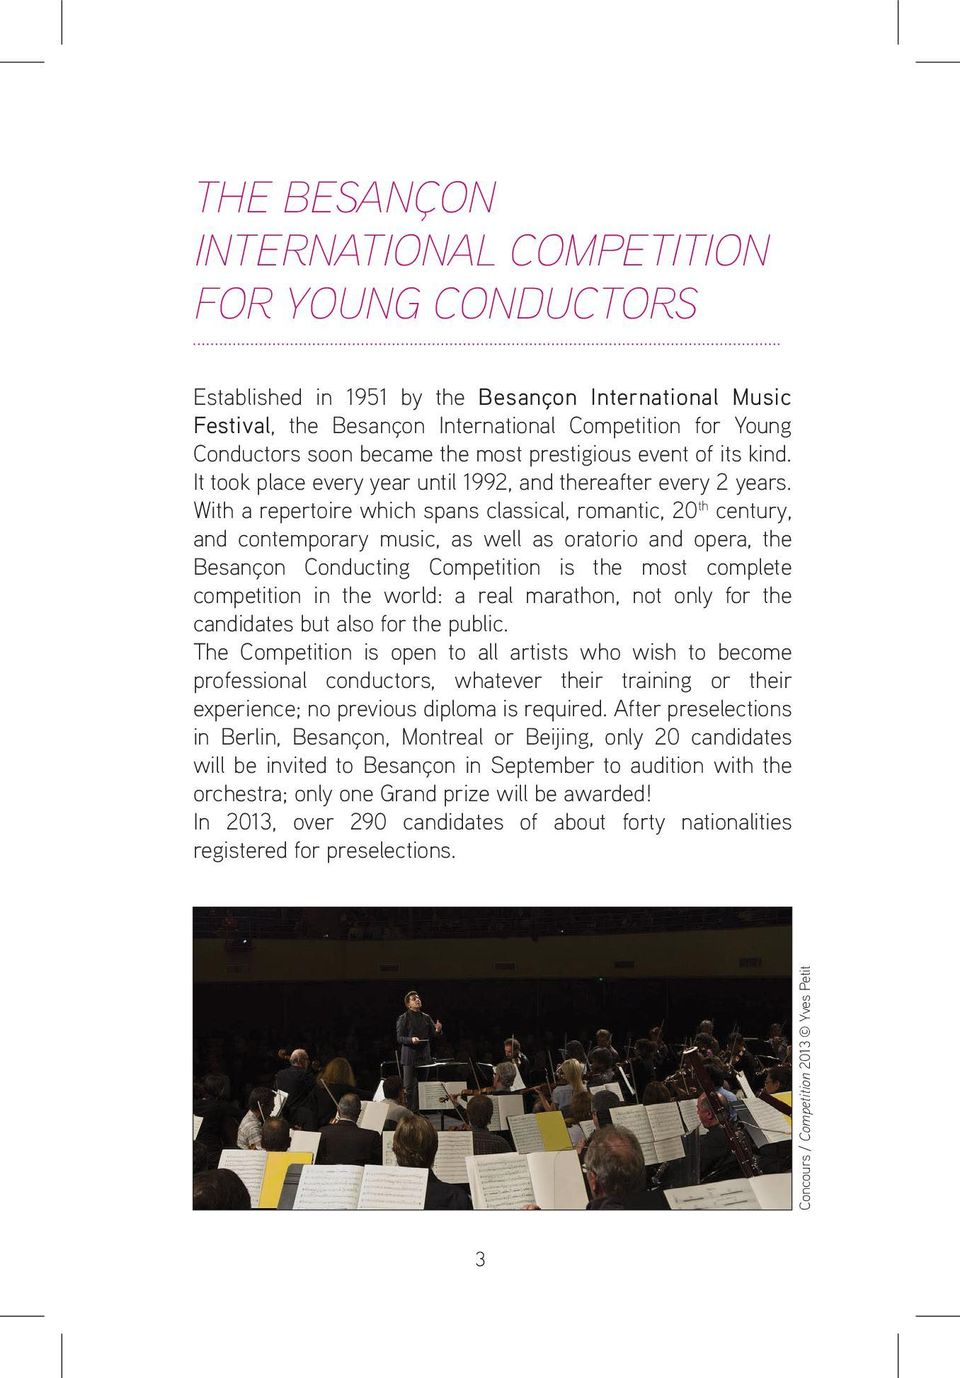 With a repertoire which spans classical, romantic, 20 th century, and contemporary music, as well as oratorio and opera, the Besançon Conducting Competition is the most complete competition in the